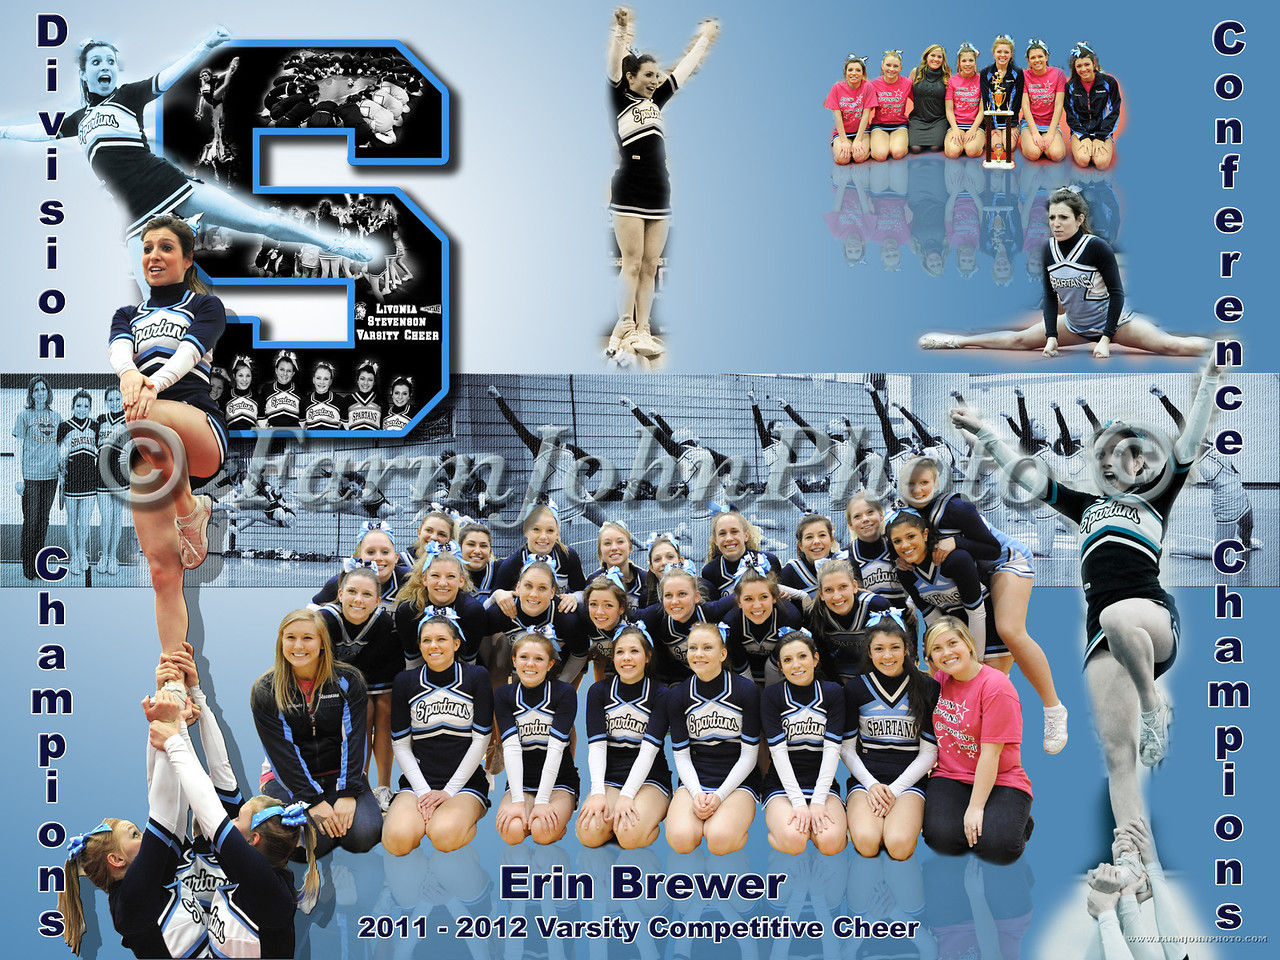 Erin Brewer 24 x 18 Format Proof 2